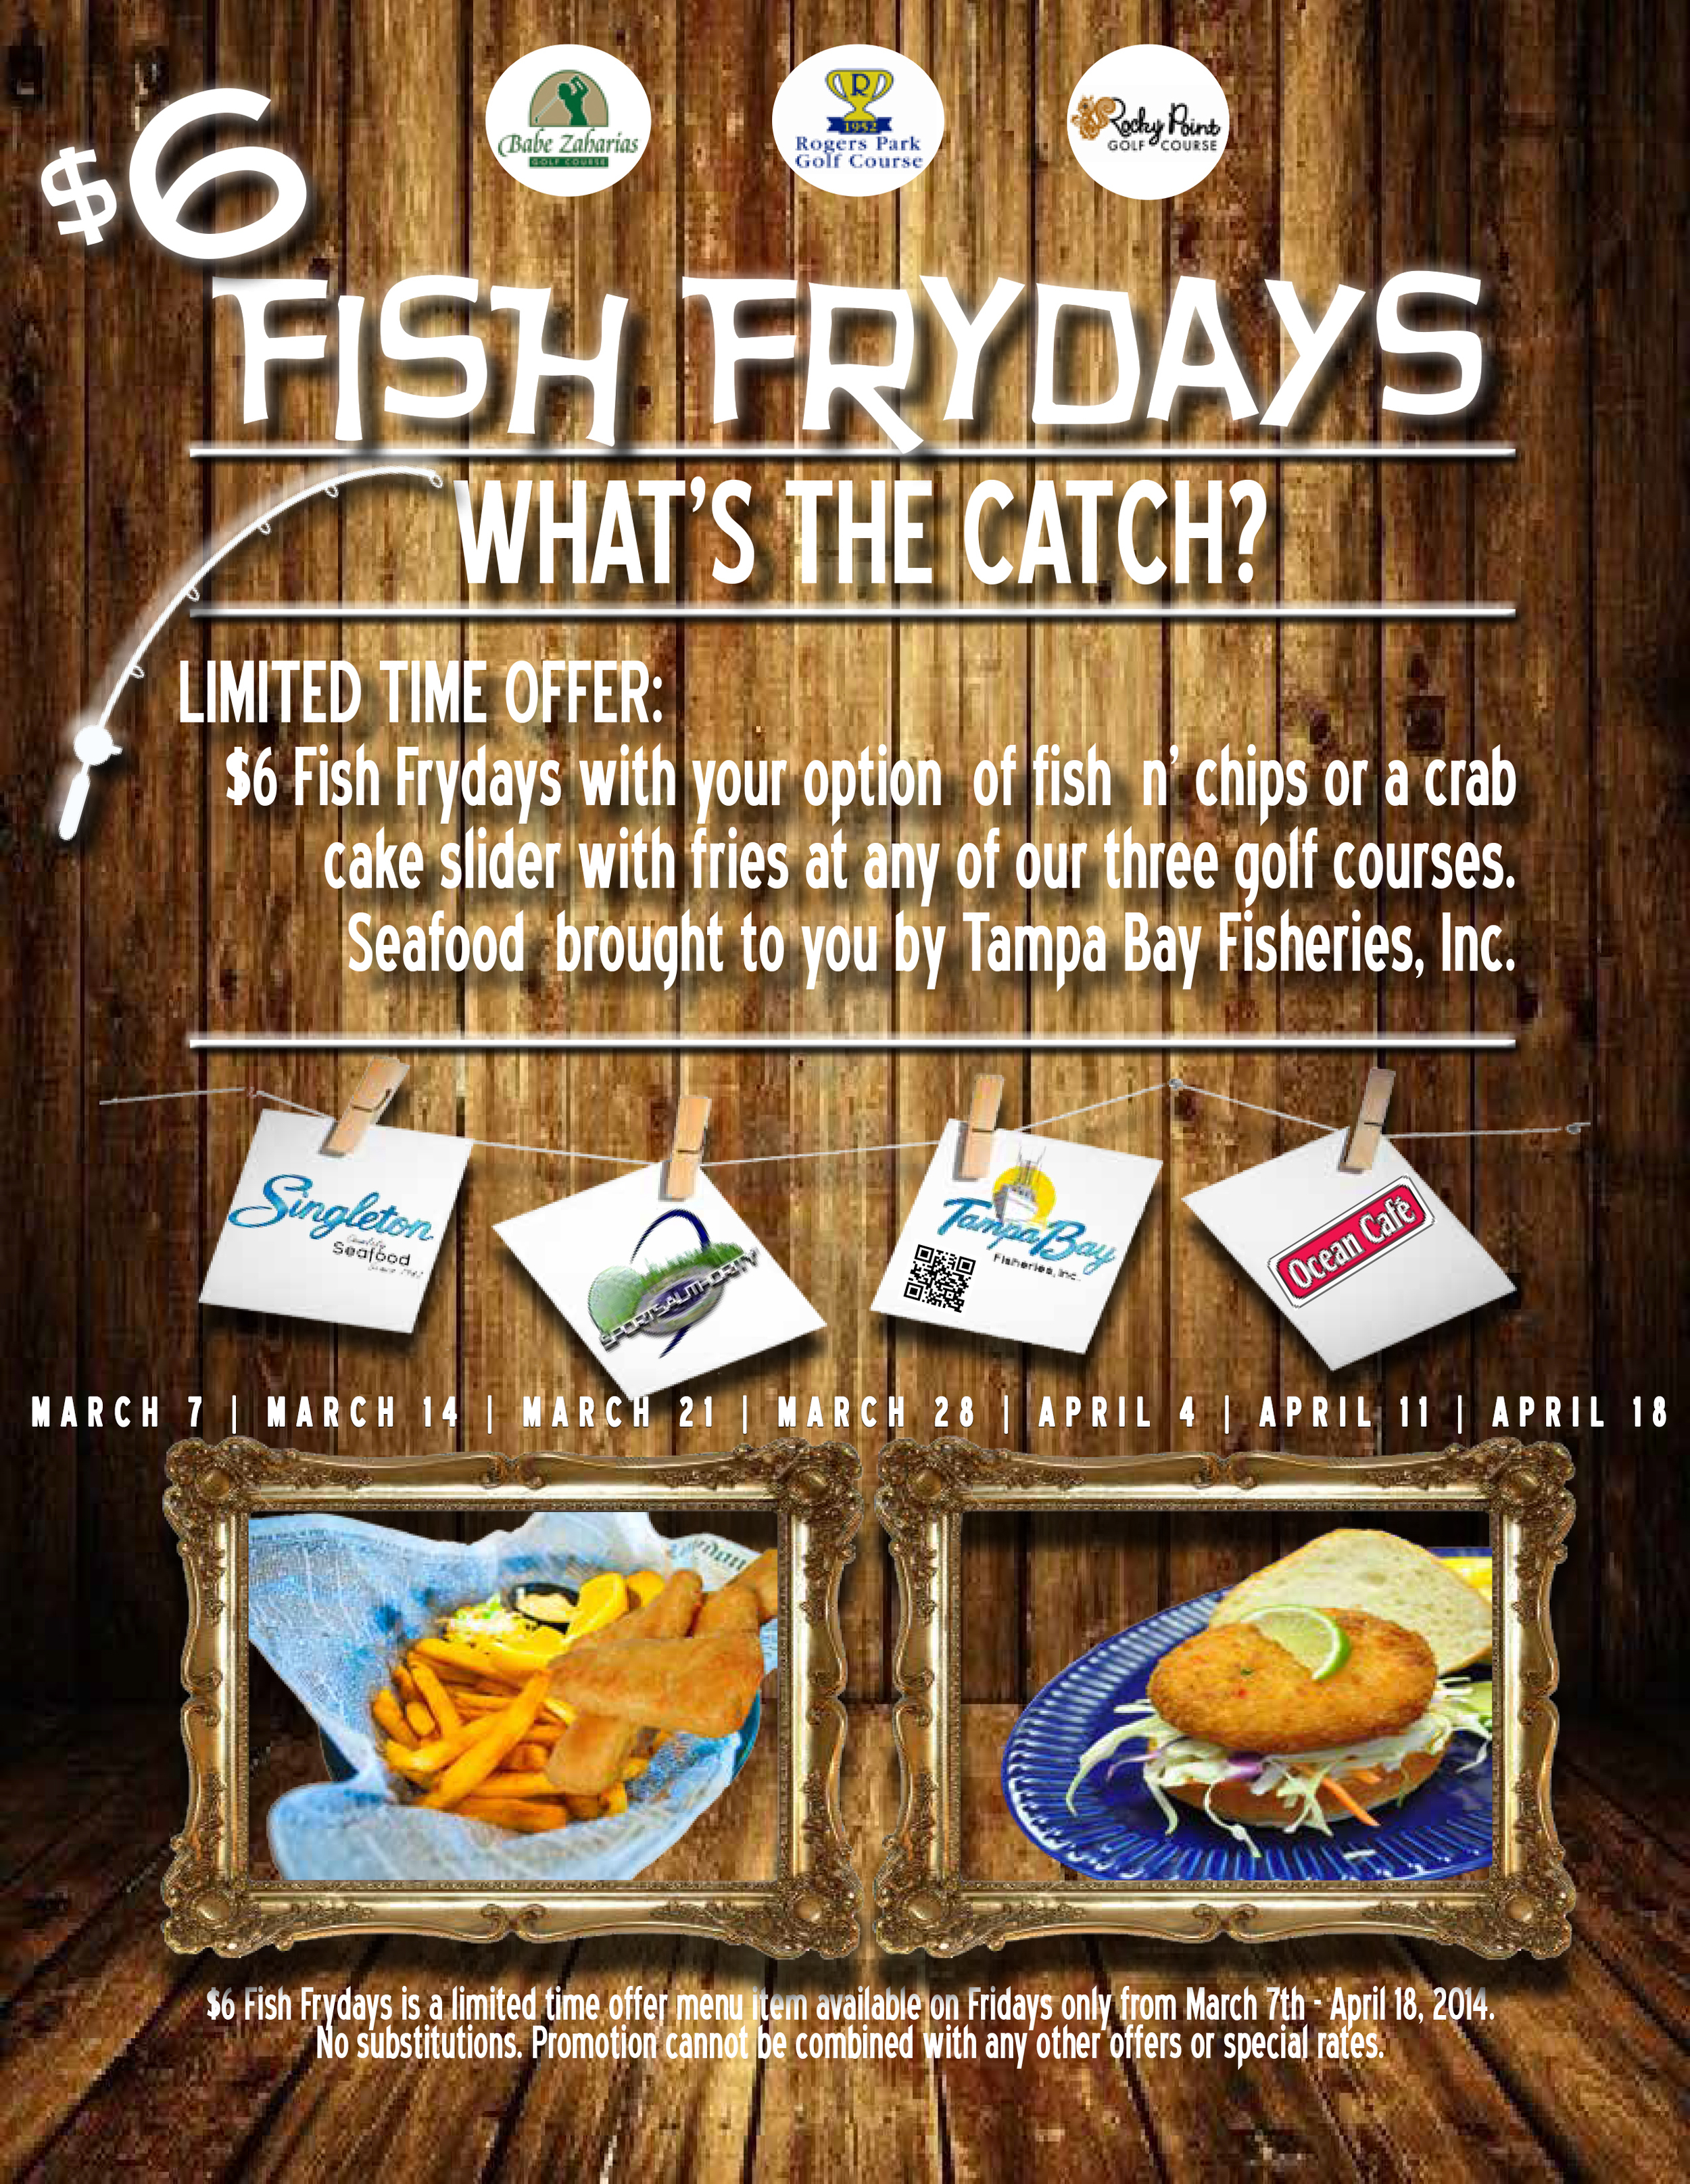 6 fish frydays flyerrrr W DATES